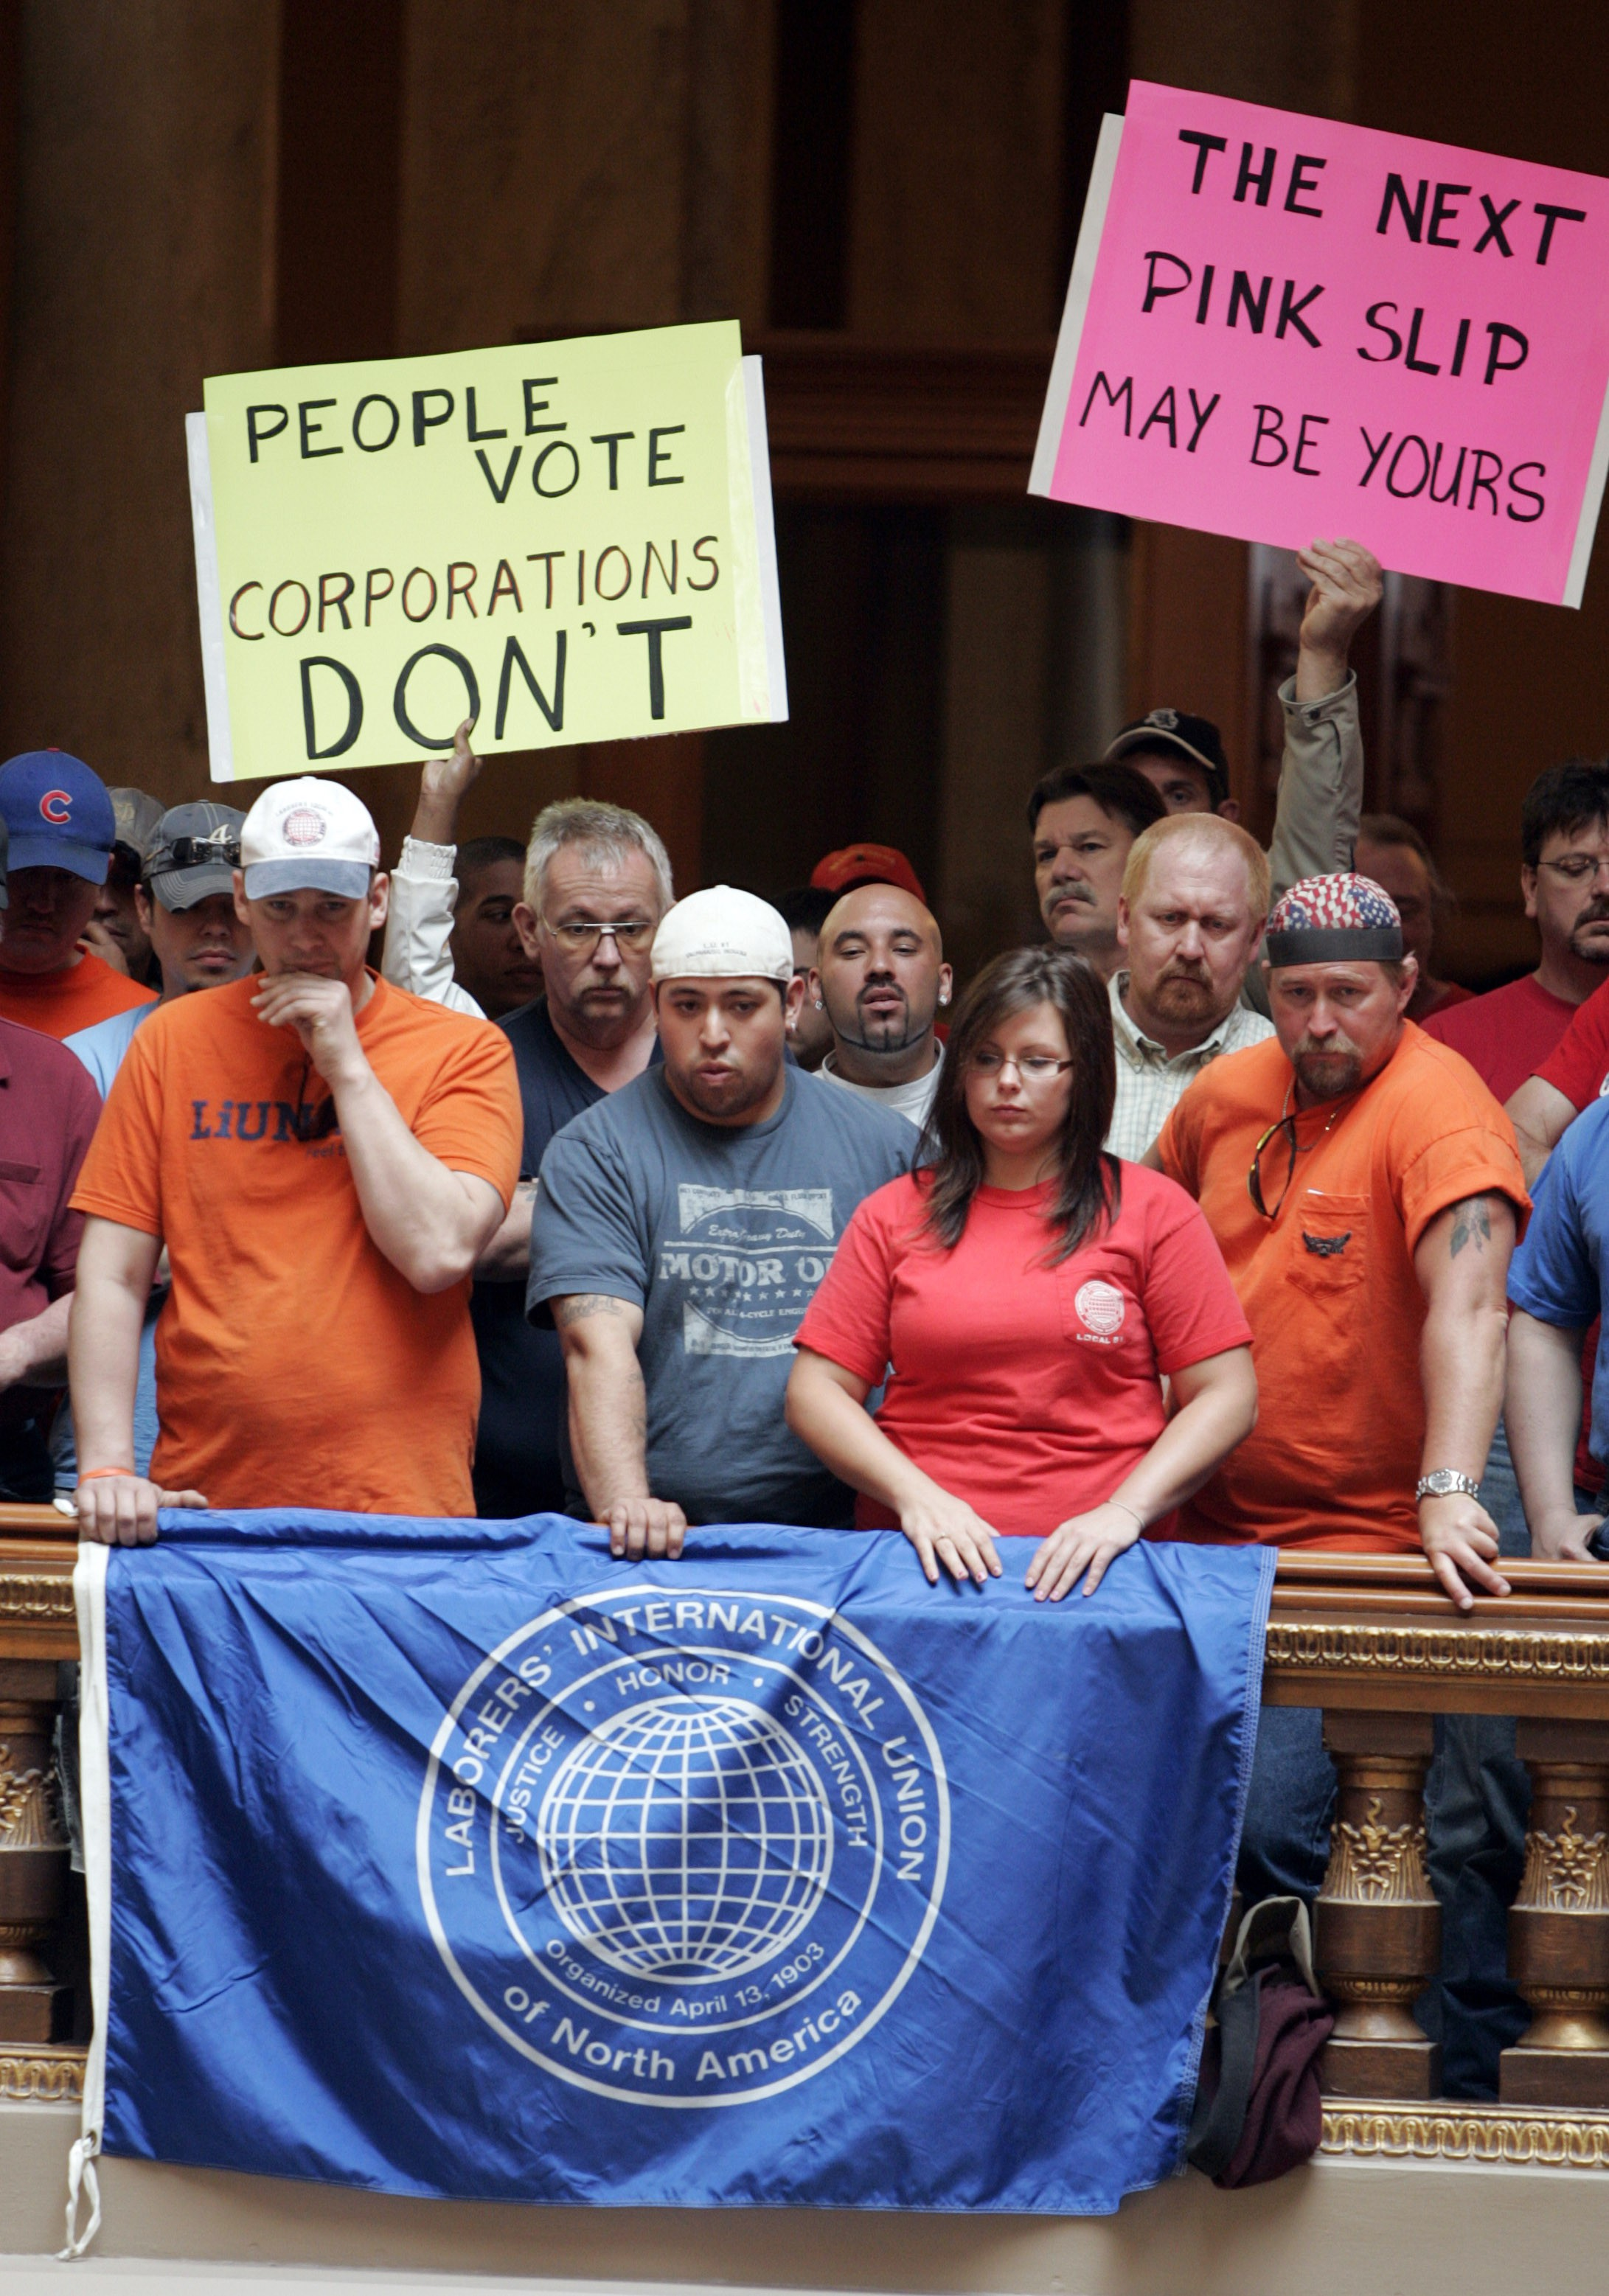 Union workers in Indianapolis, Indiana